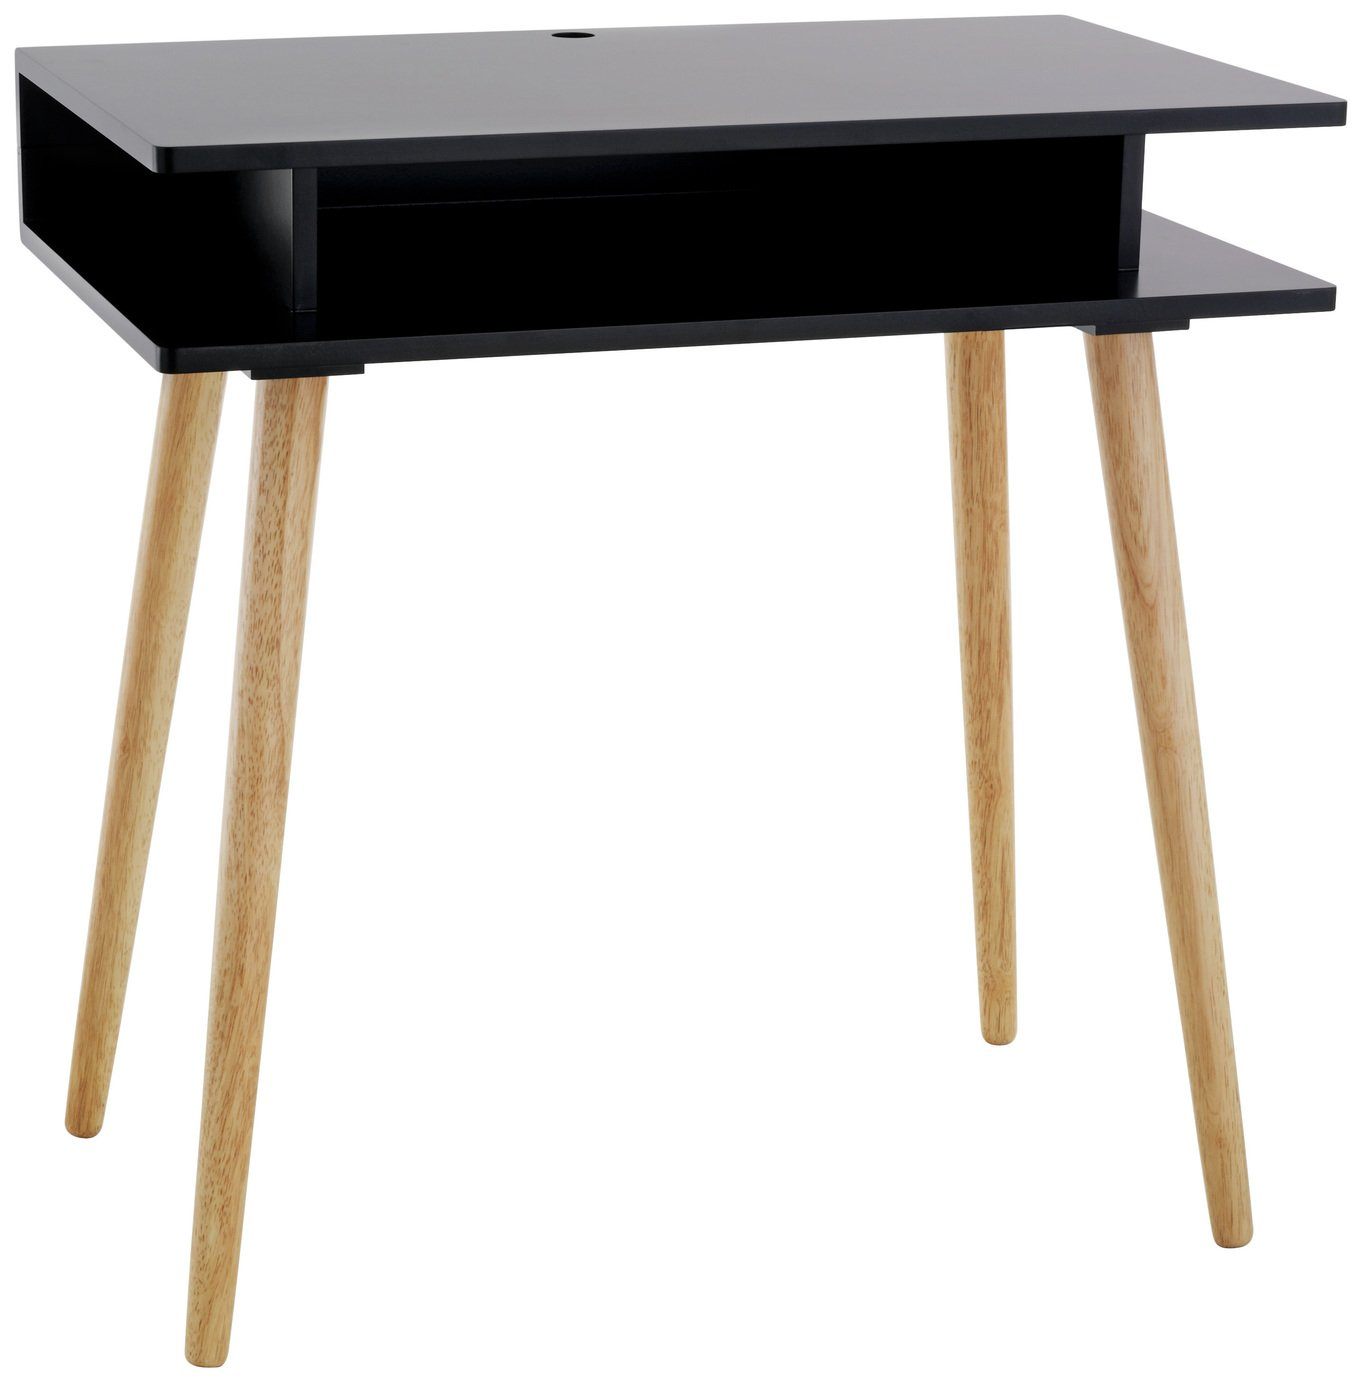 Image of Habitat Cato Desk - Black